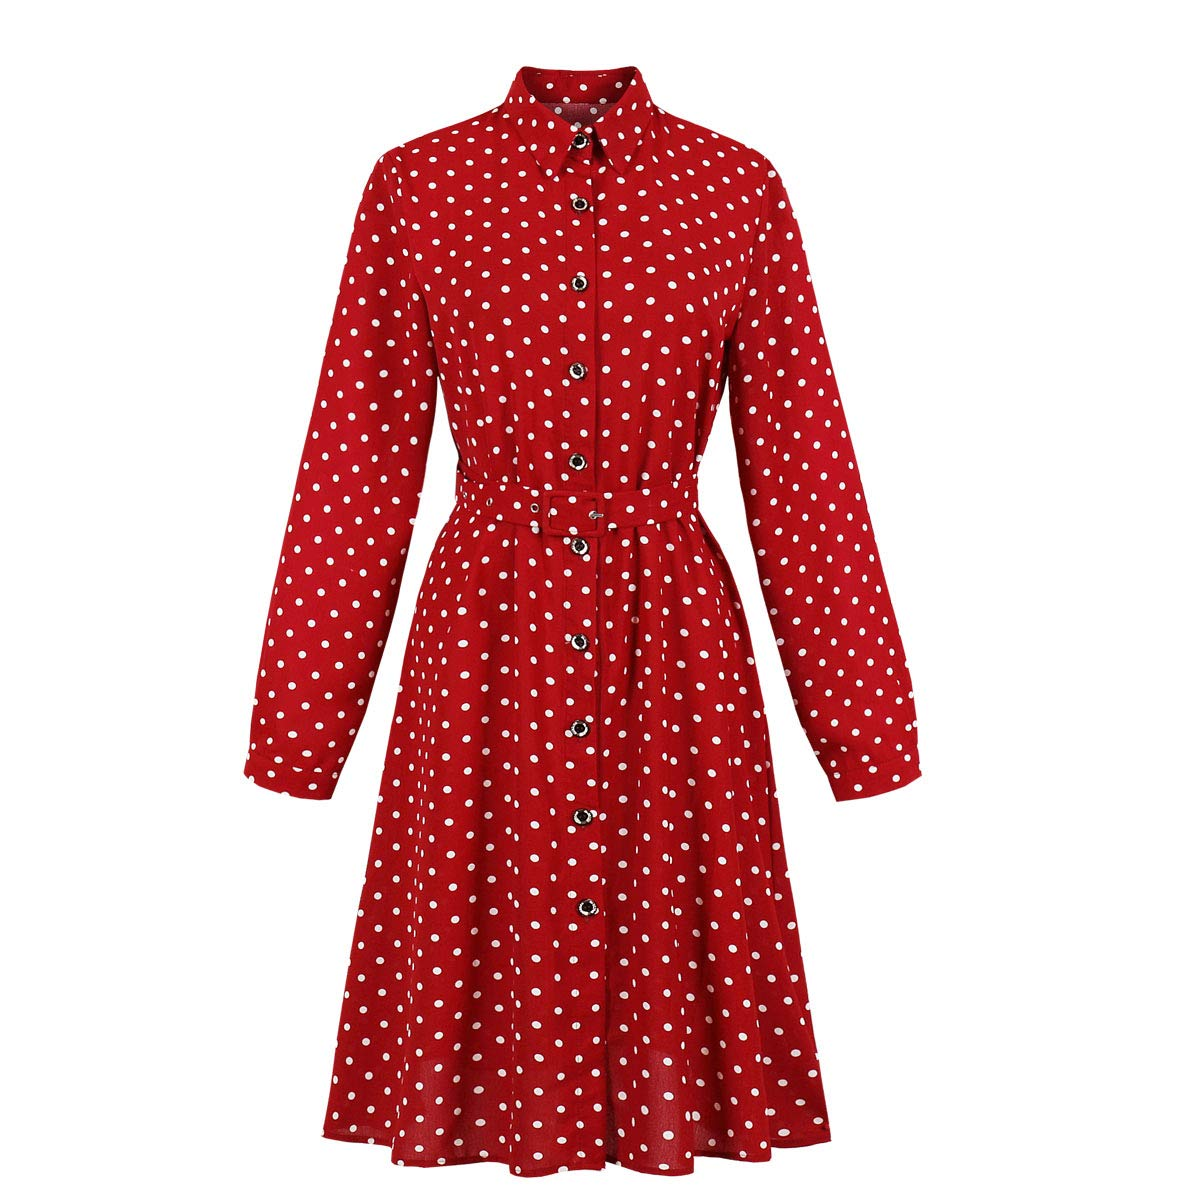 Rockabilly Dresses | Rockabilly Clothing | Viva Las Vegas Wellwits Womens Long Sleeves Polka Dots Button Down Vintage Shirt Dress $21.98 AT vintagedancer.com